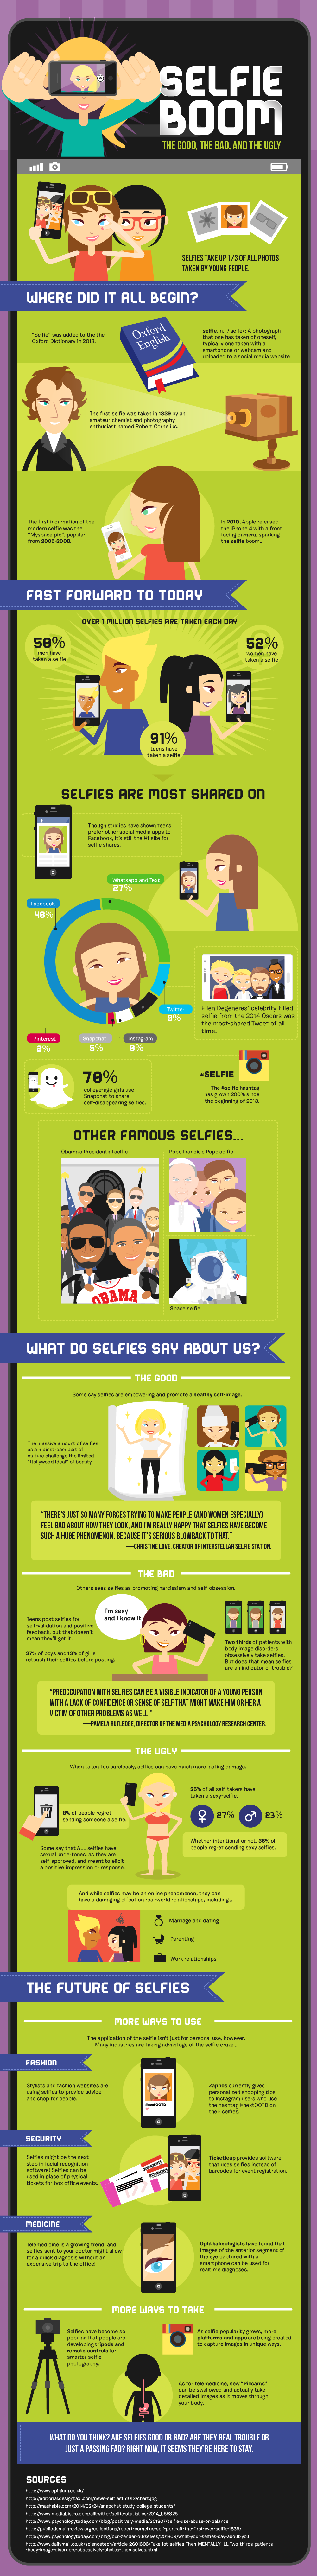 Selfie Boom: The Good, The Bad and The Ugly